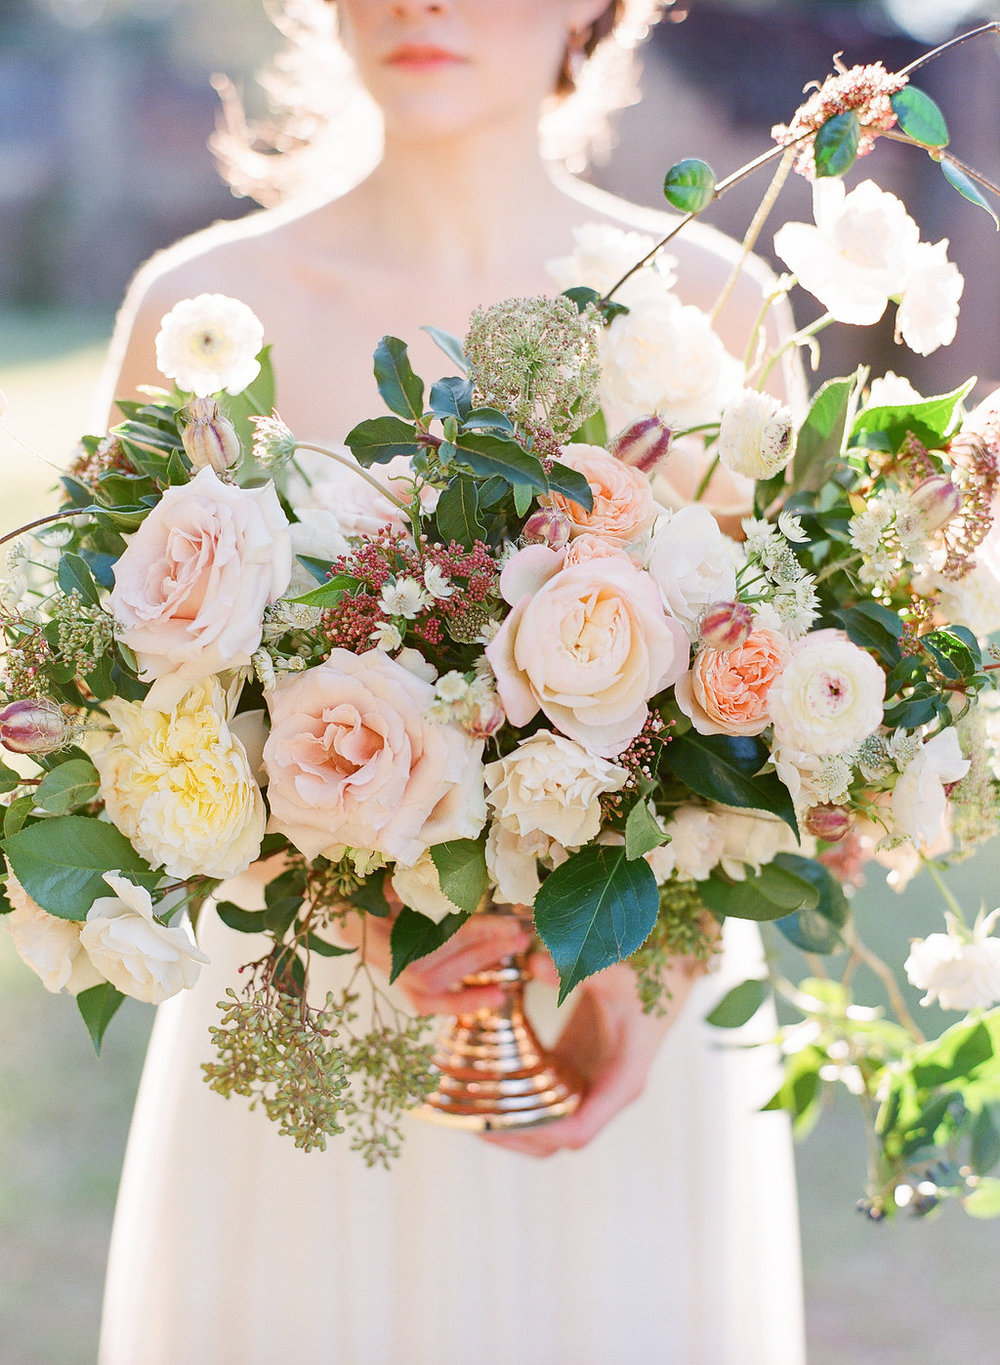 the-happy-bloom-ivory-and-beau-bridal-boutique-trendy-bride-magazine-august-floral-design-savannah-bridal-boutique-lafayette-sarah-seven-boone-hall-plantation-wedding-southern-wedding-charleston-wedding-mt-pleasent-wedding-22.jpg